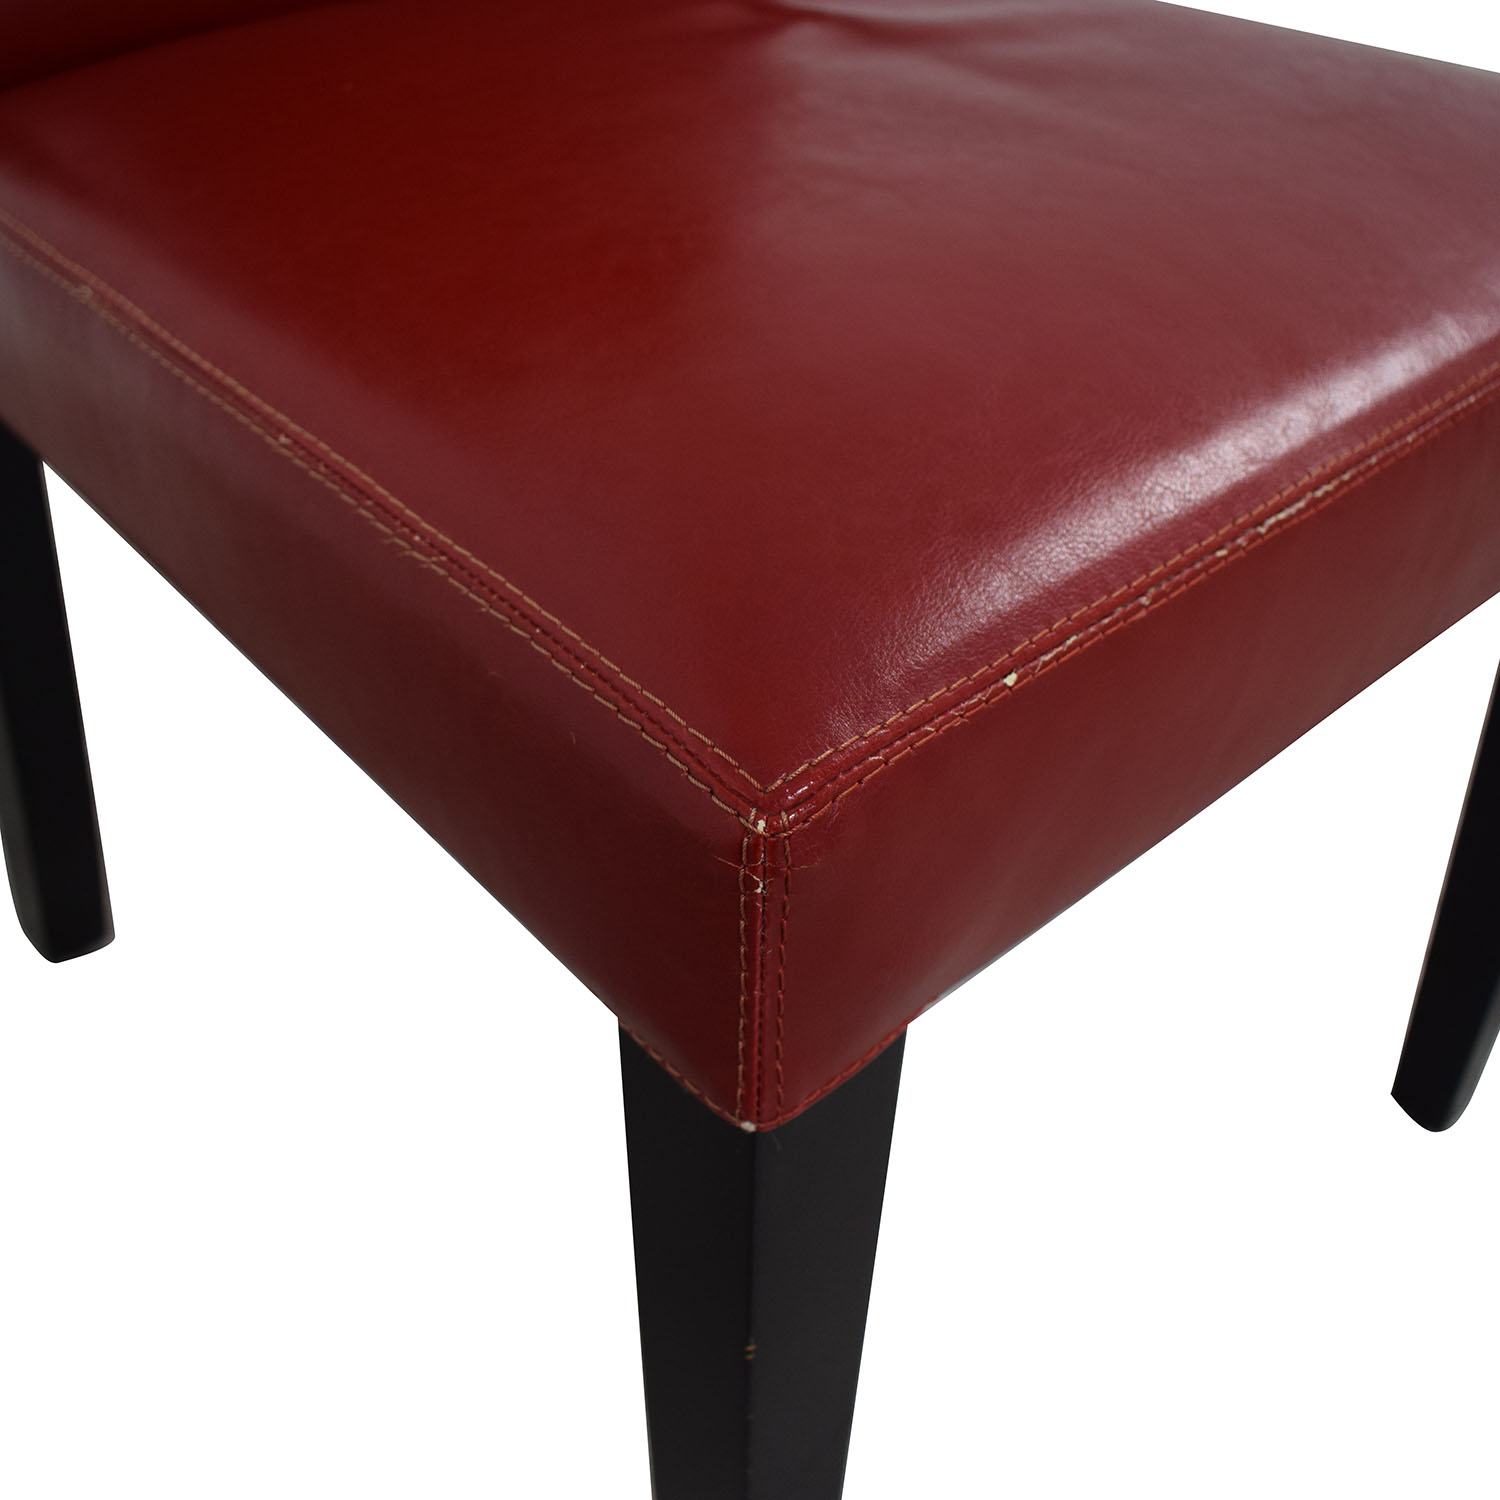 Crate & Barrel Crate & Barrel Pullman Accent Chair used